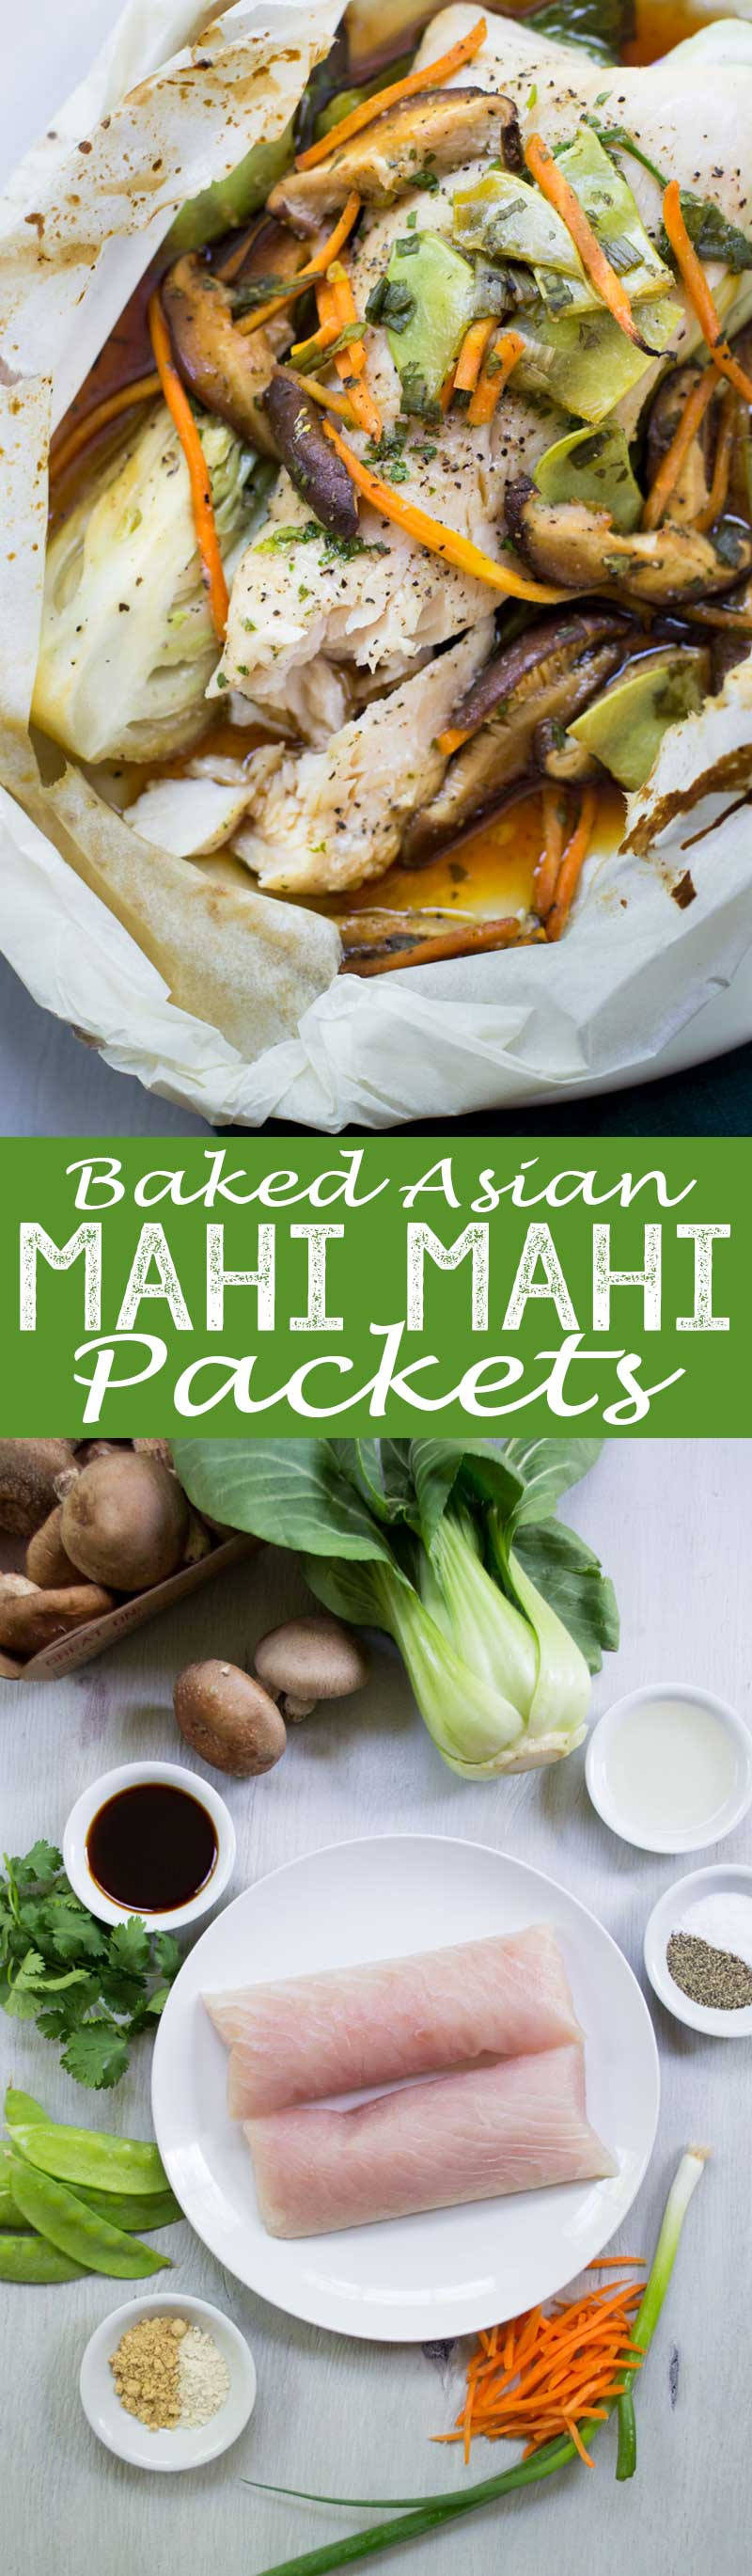 Such a fantastic dinner, these baked asian mahi mahi packets will rock your tastebuds